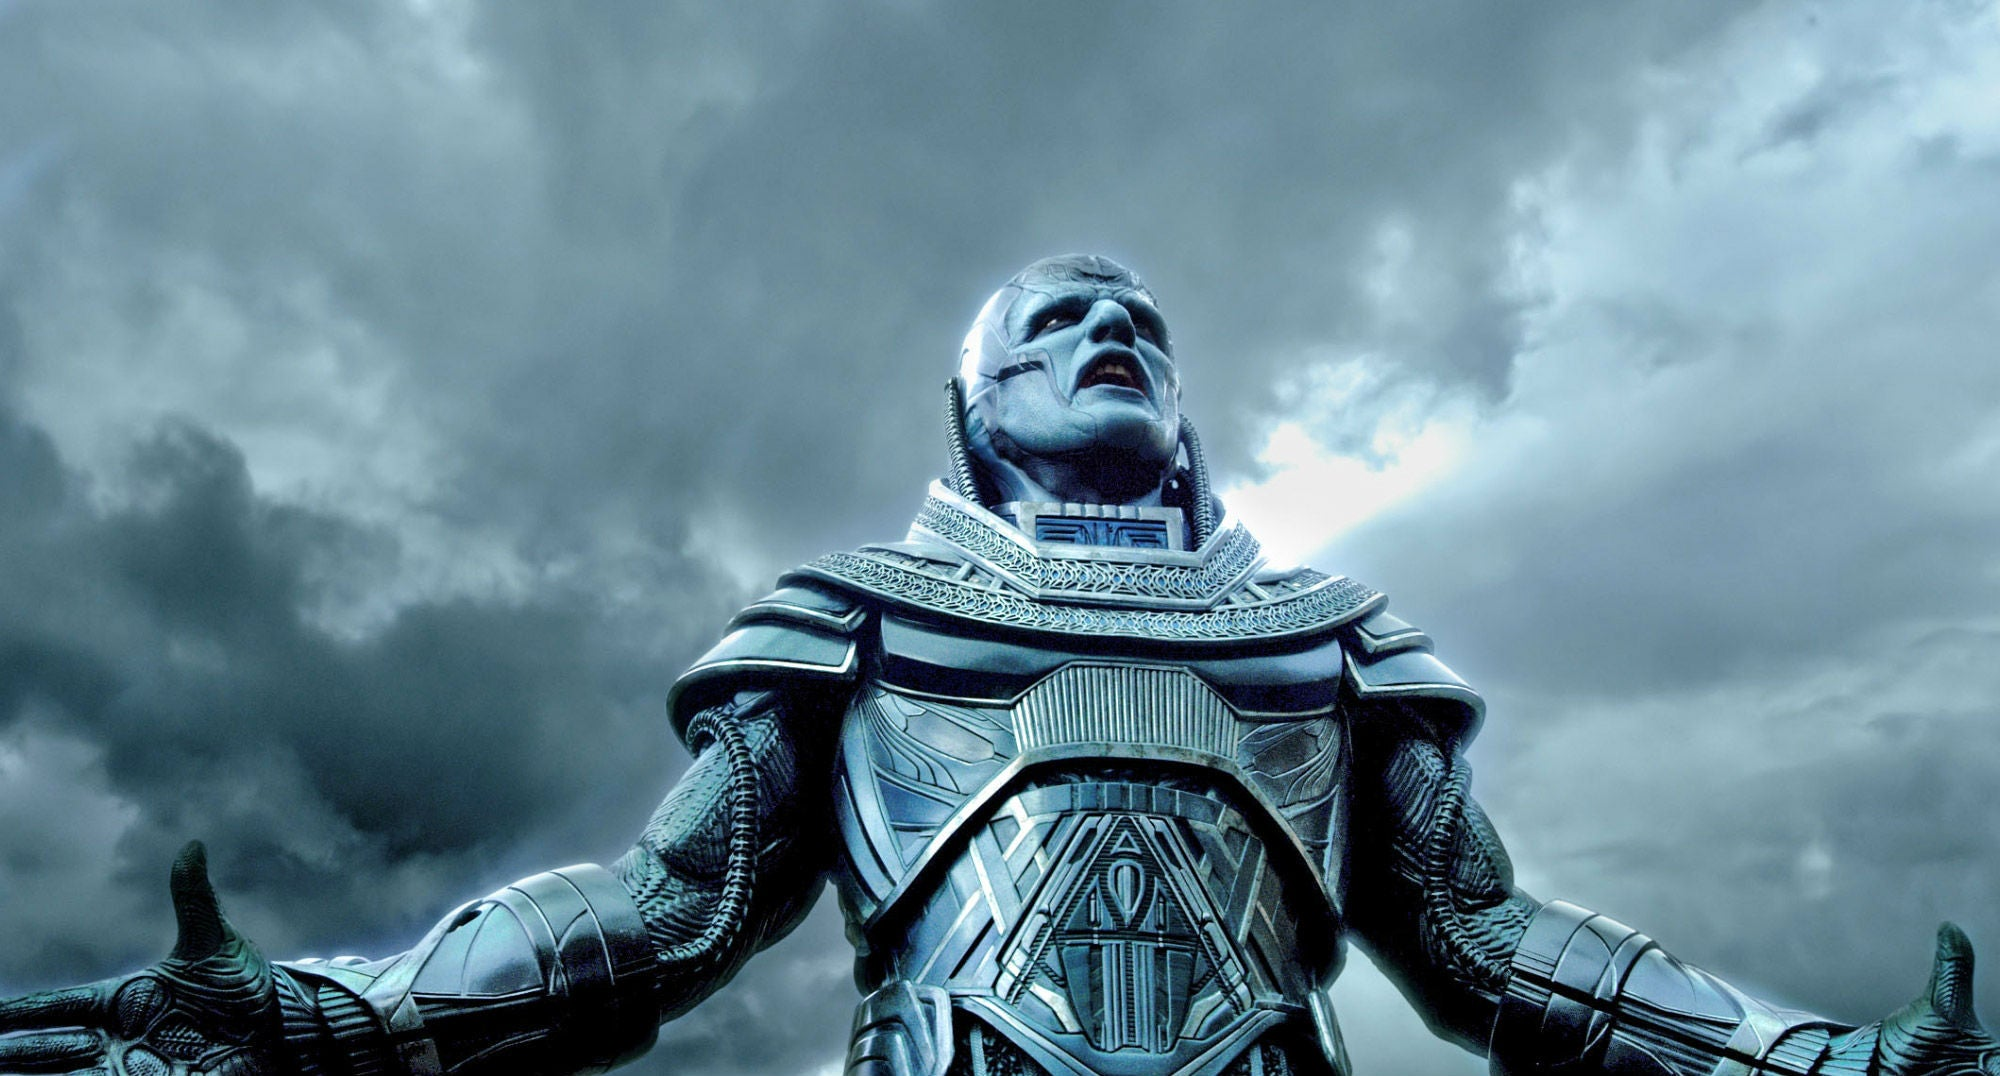 X-Men: Apocalypse Is the Biggest and Emptiest X-Men Movie Yet